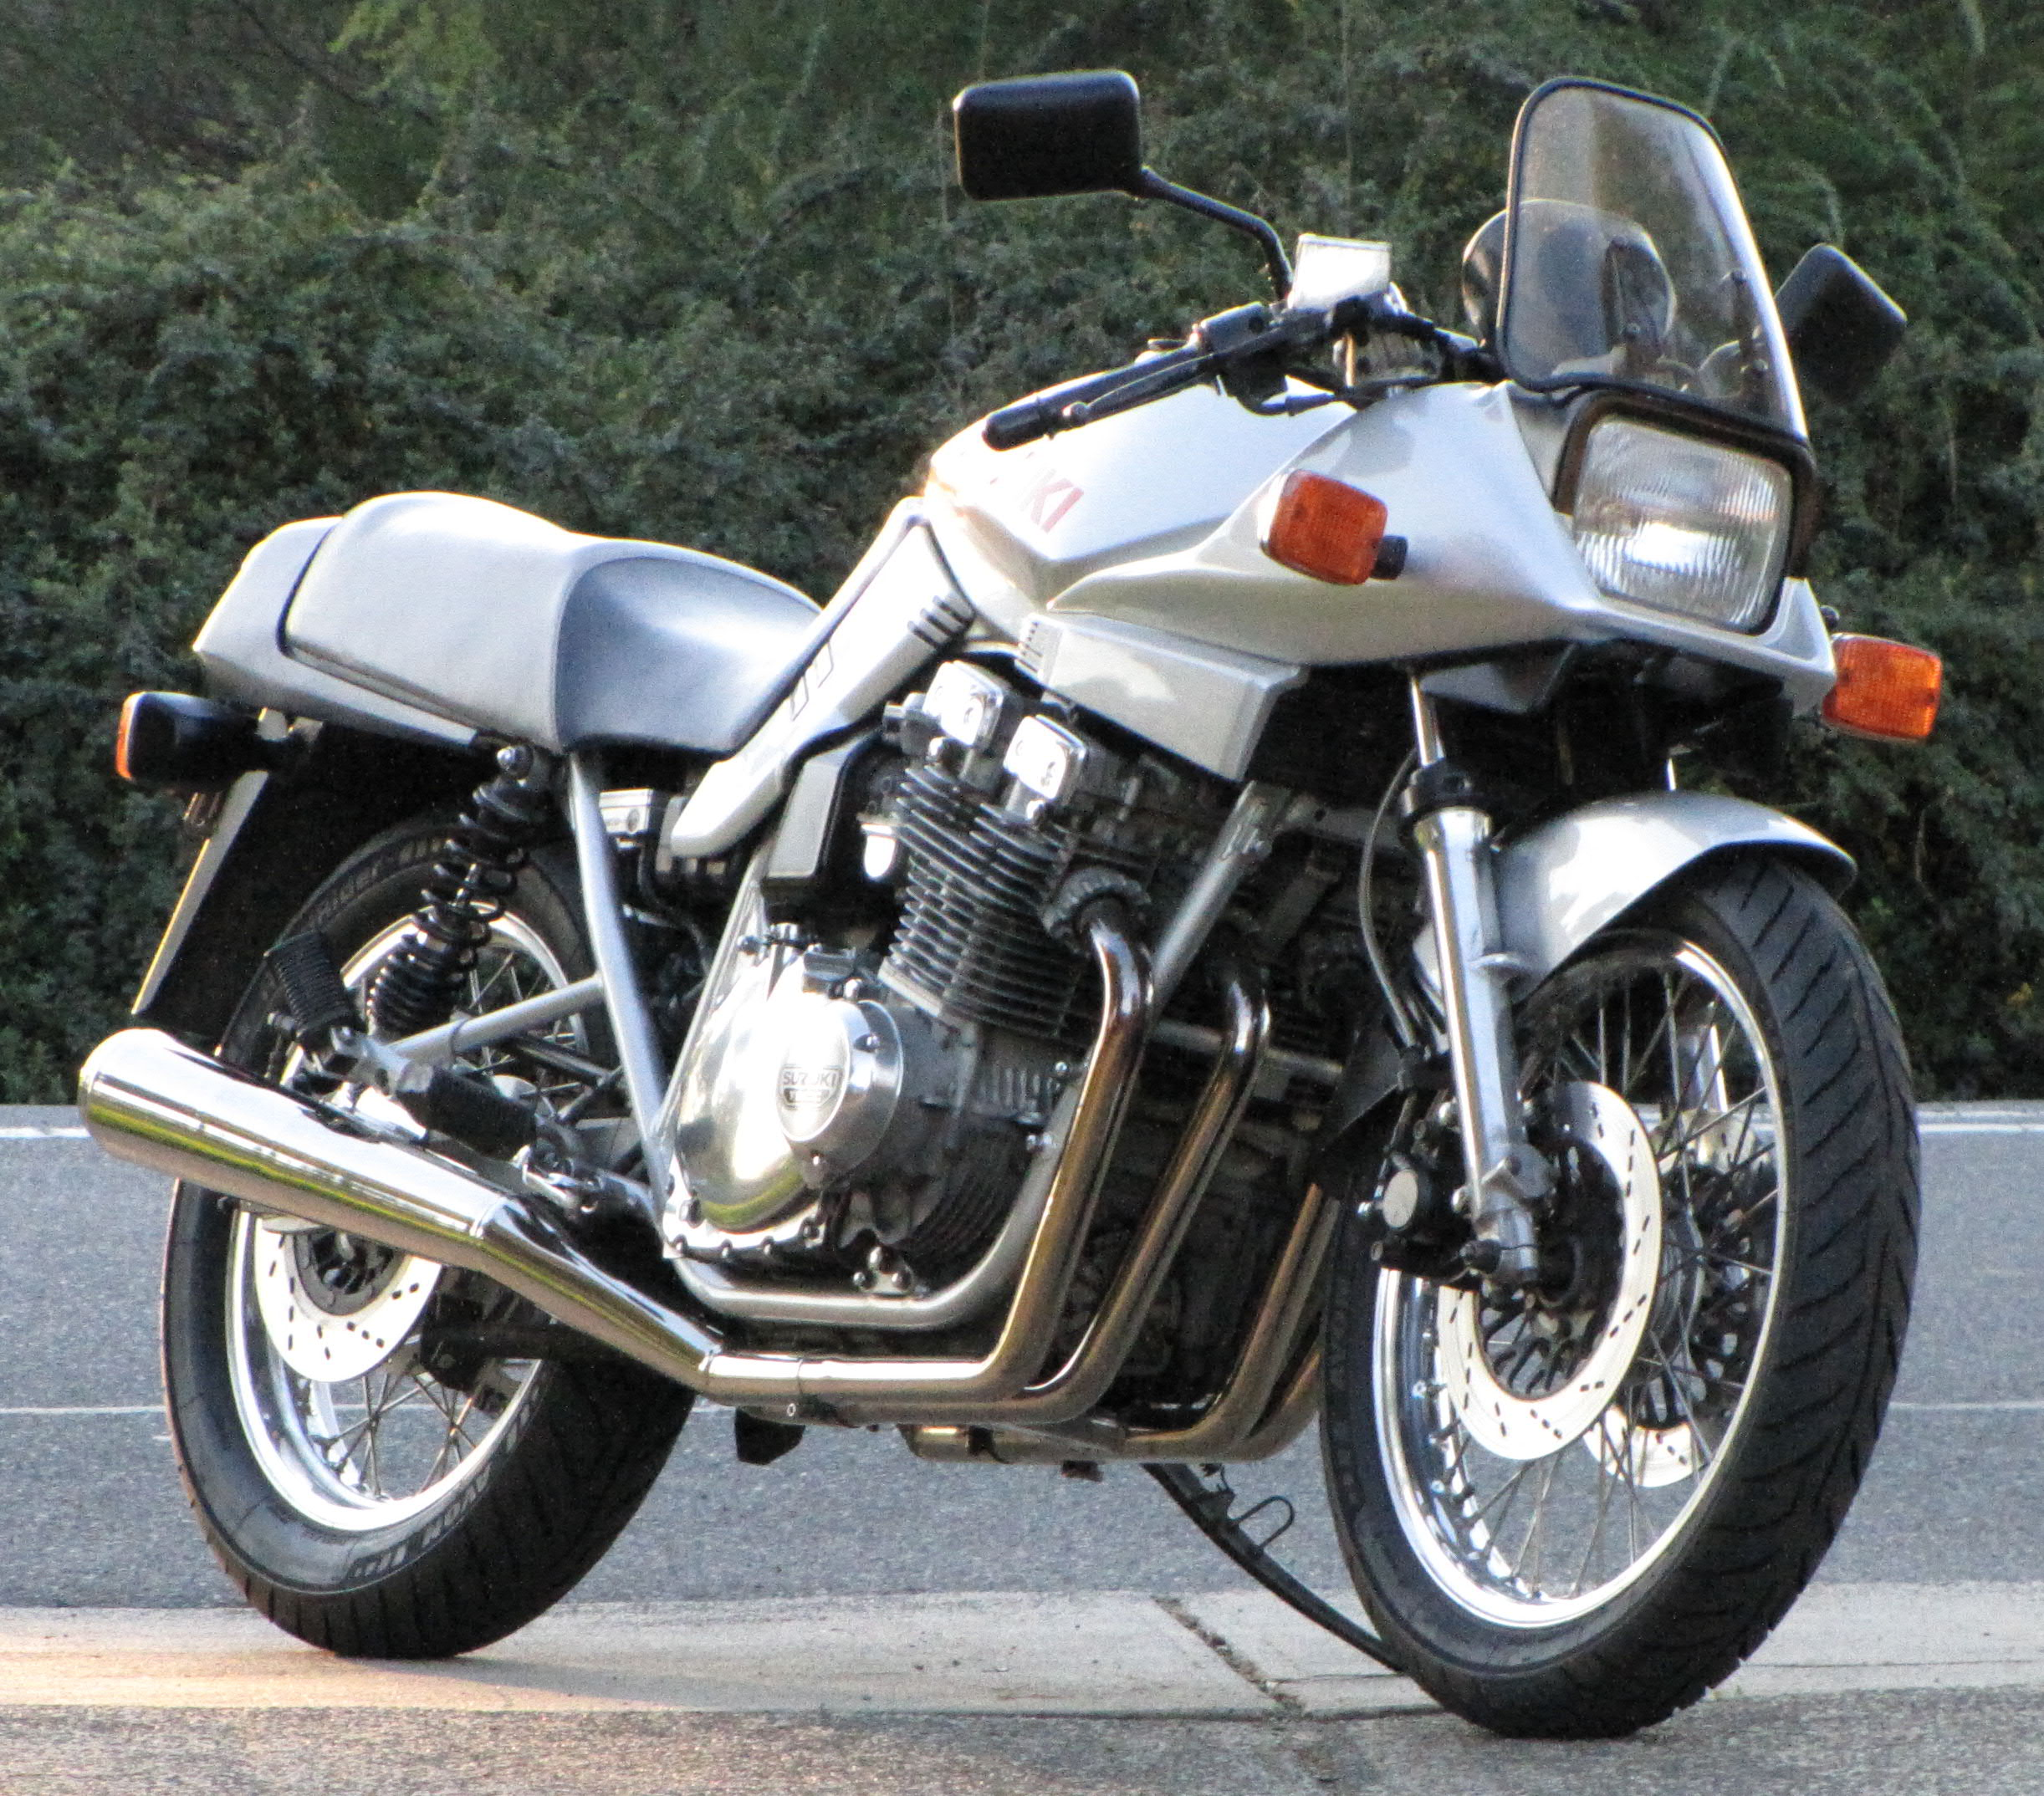 Suzuki GS 500 E (reduced effect) 1991 #7